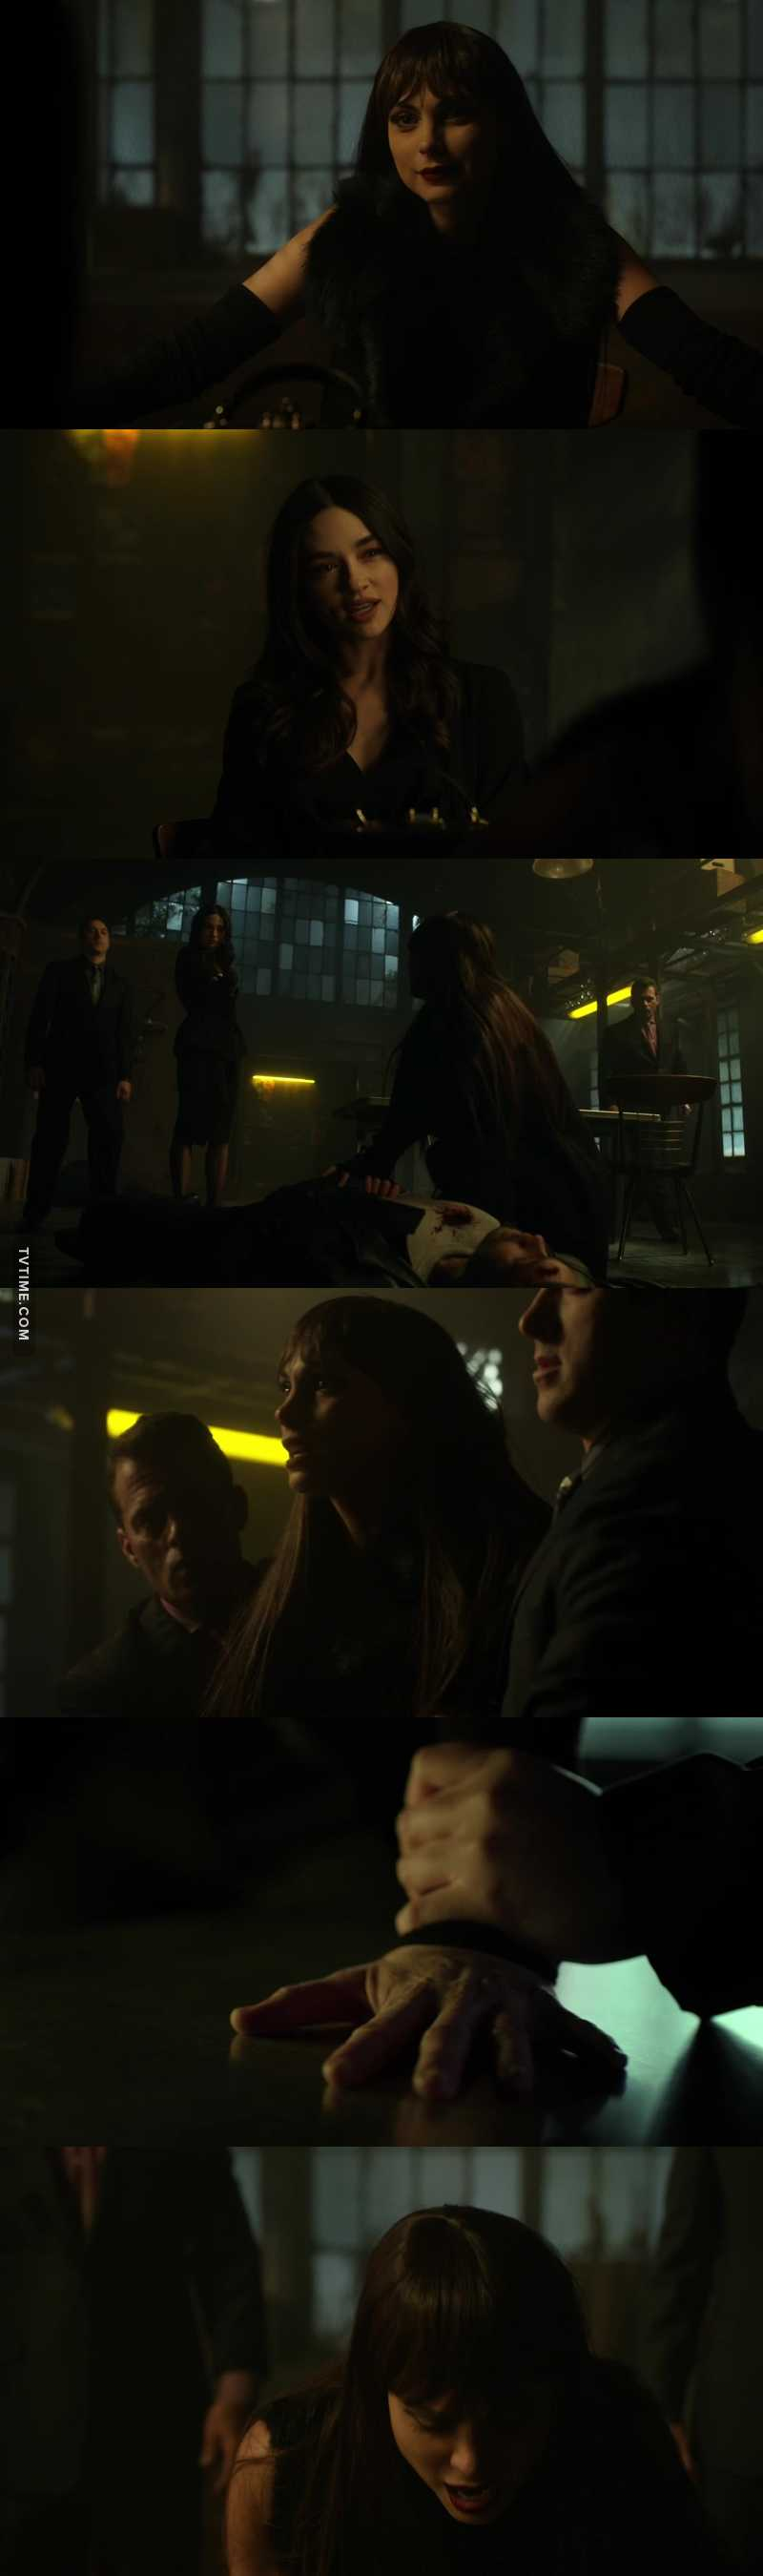 I just couldn't watch this scene. Poor Lee ! :/